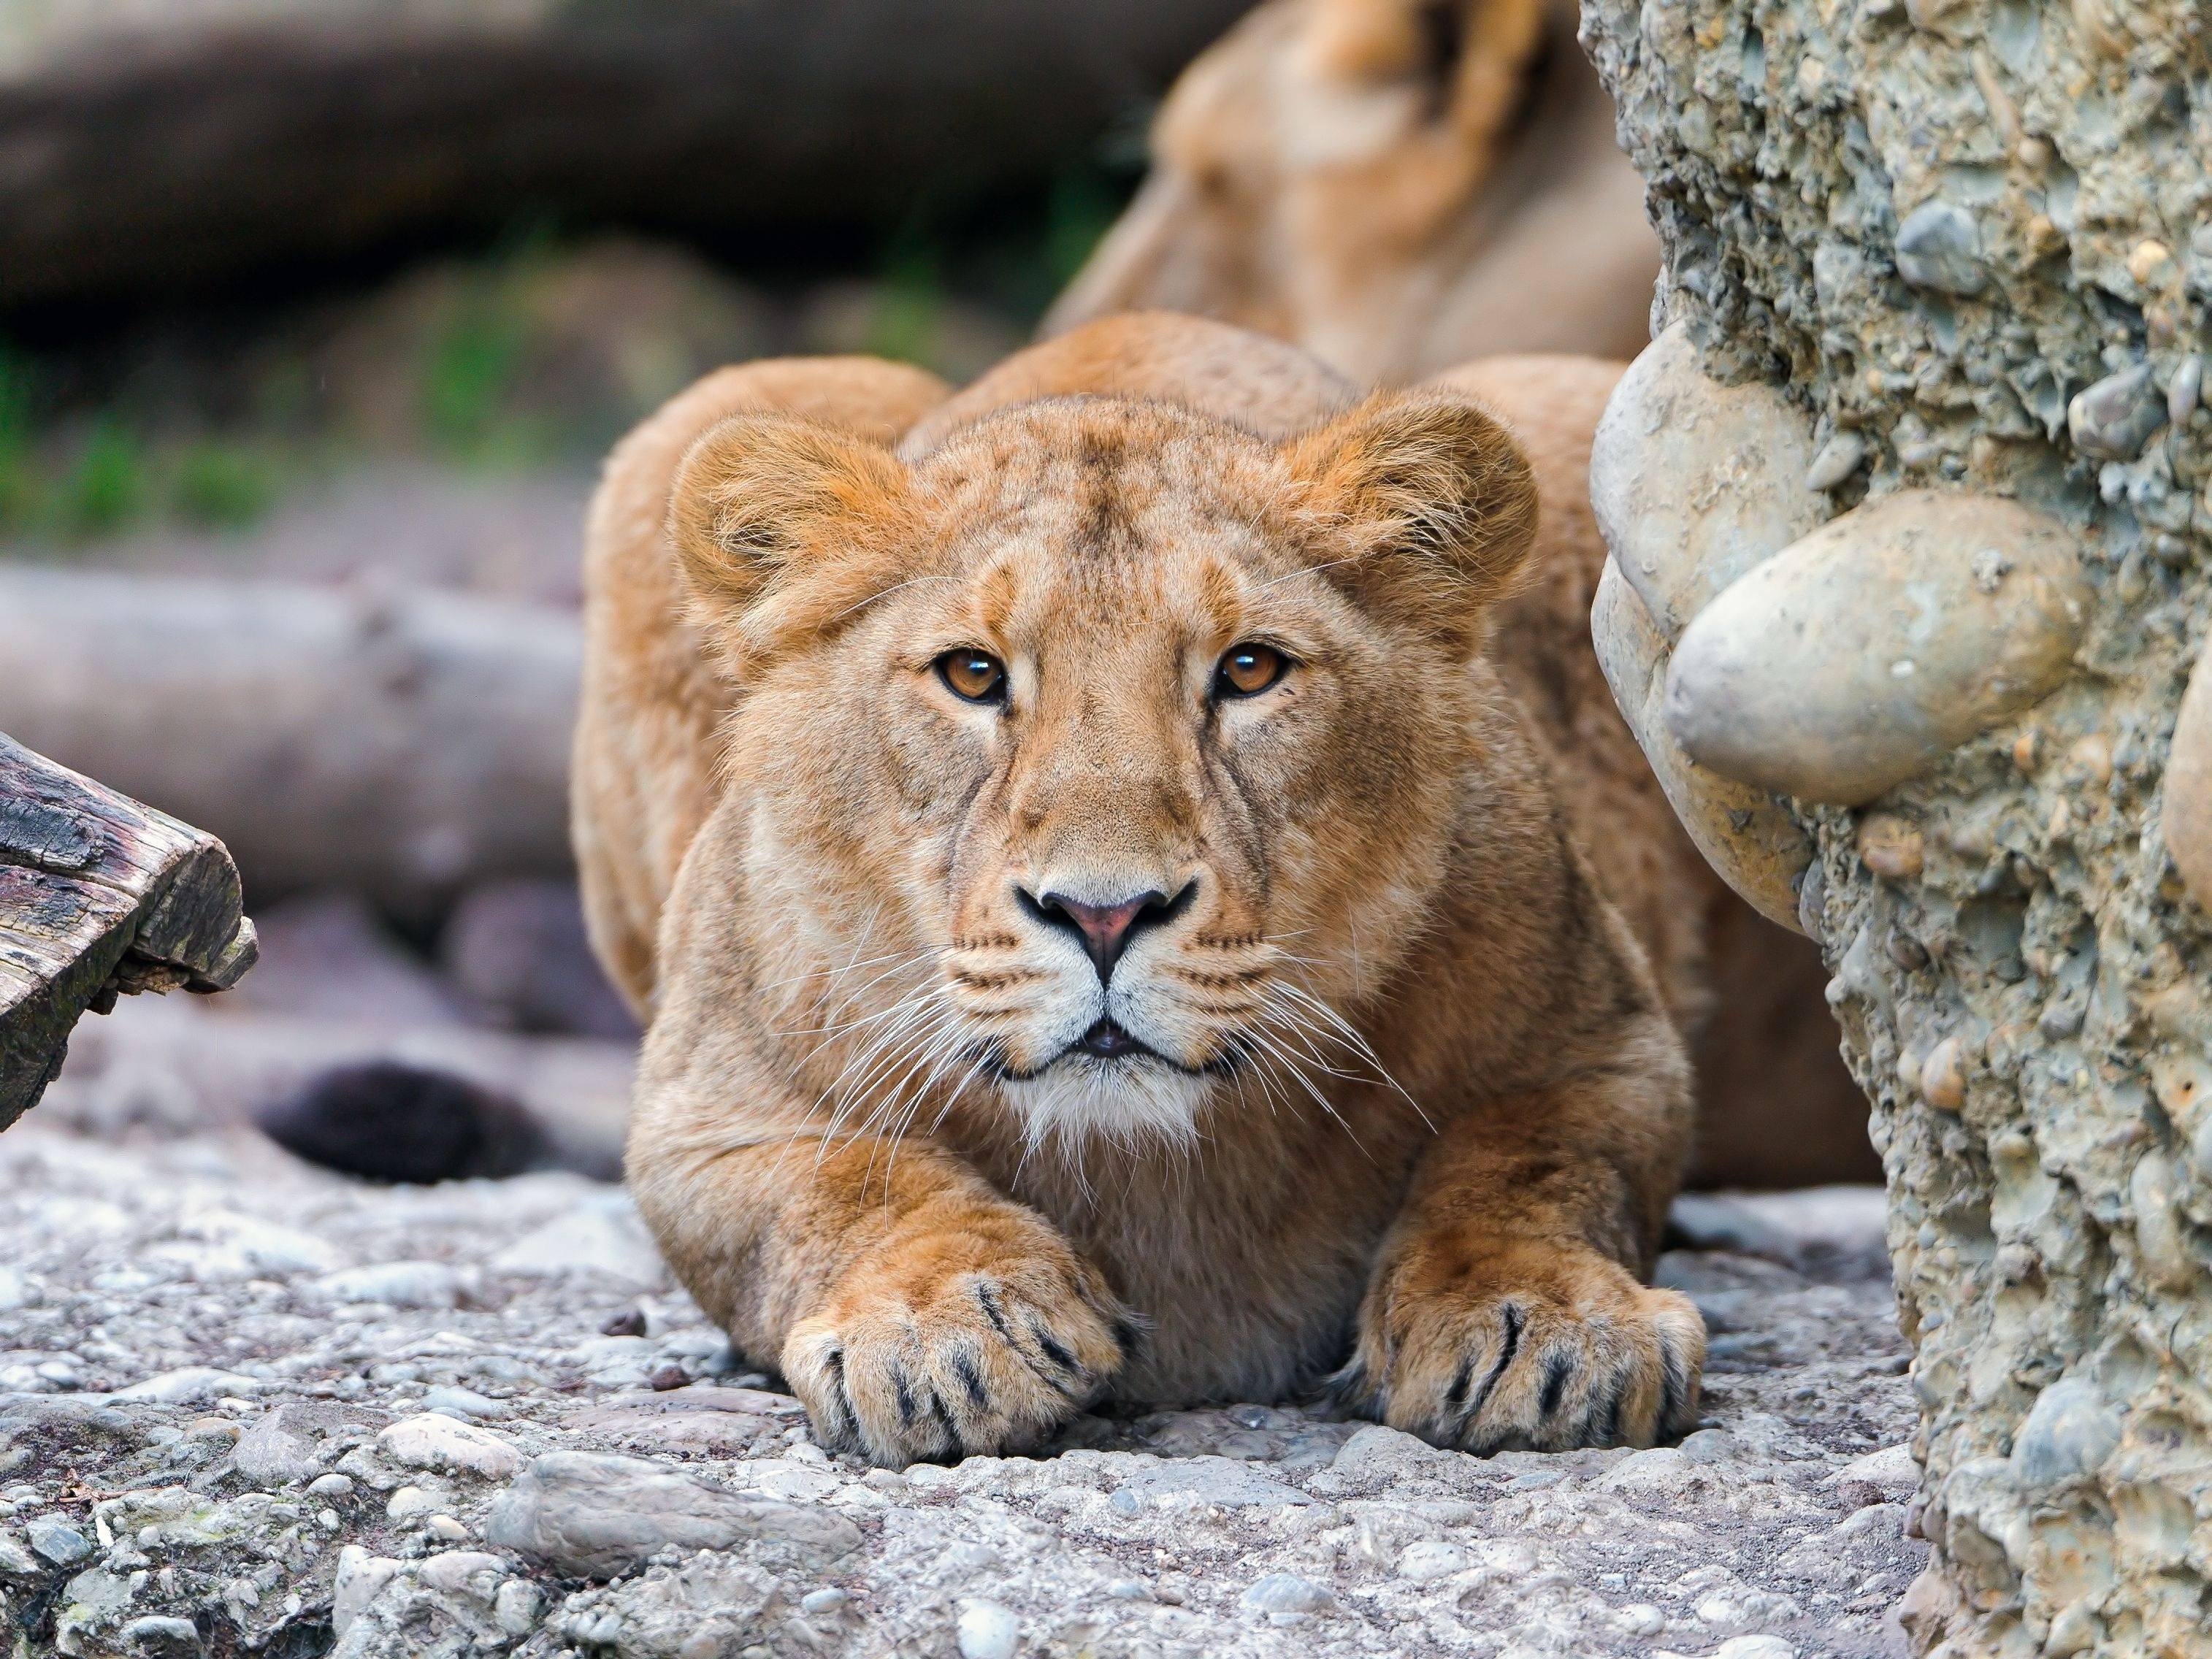 87504 download wallpaper Animals, Lion, Young, Predator, Alertness, Stones screensavers and pictures for free